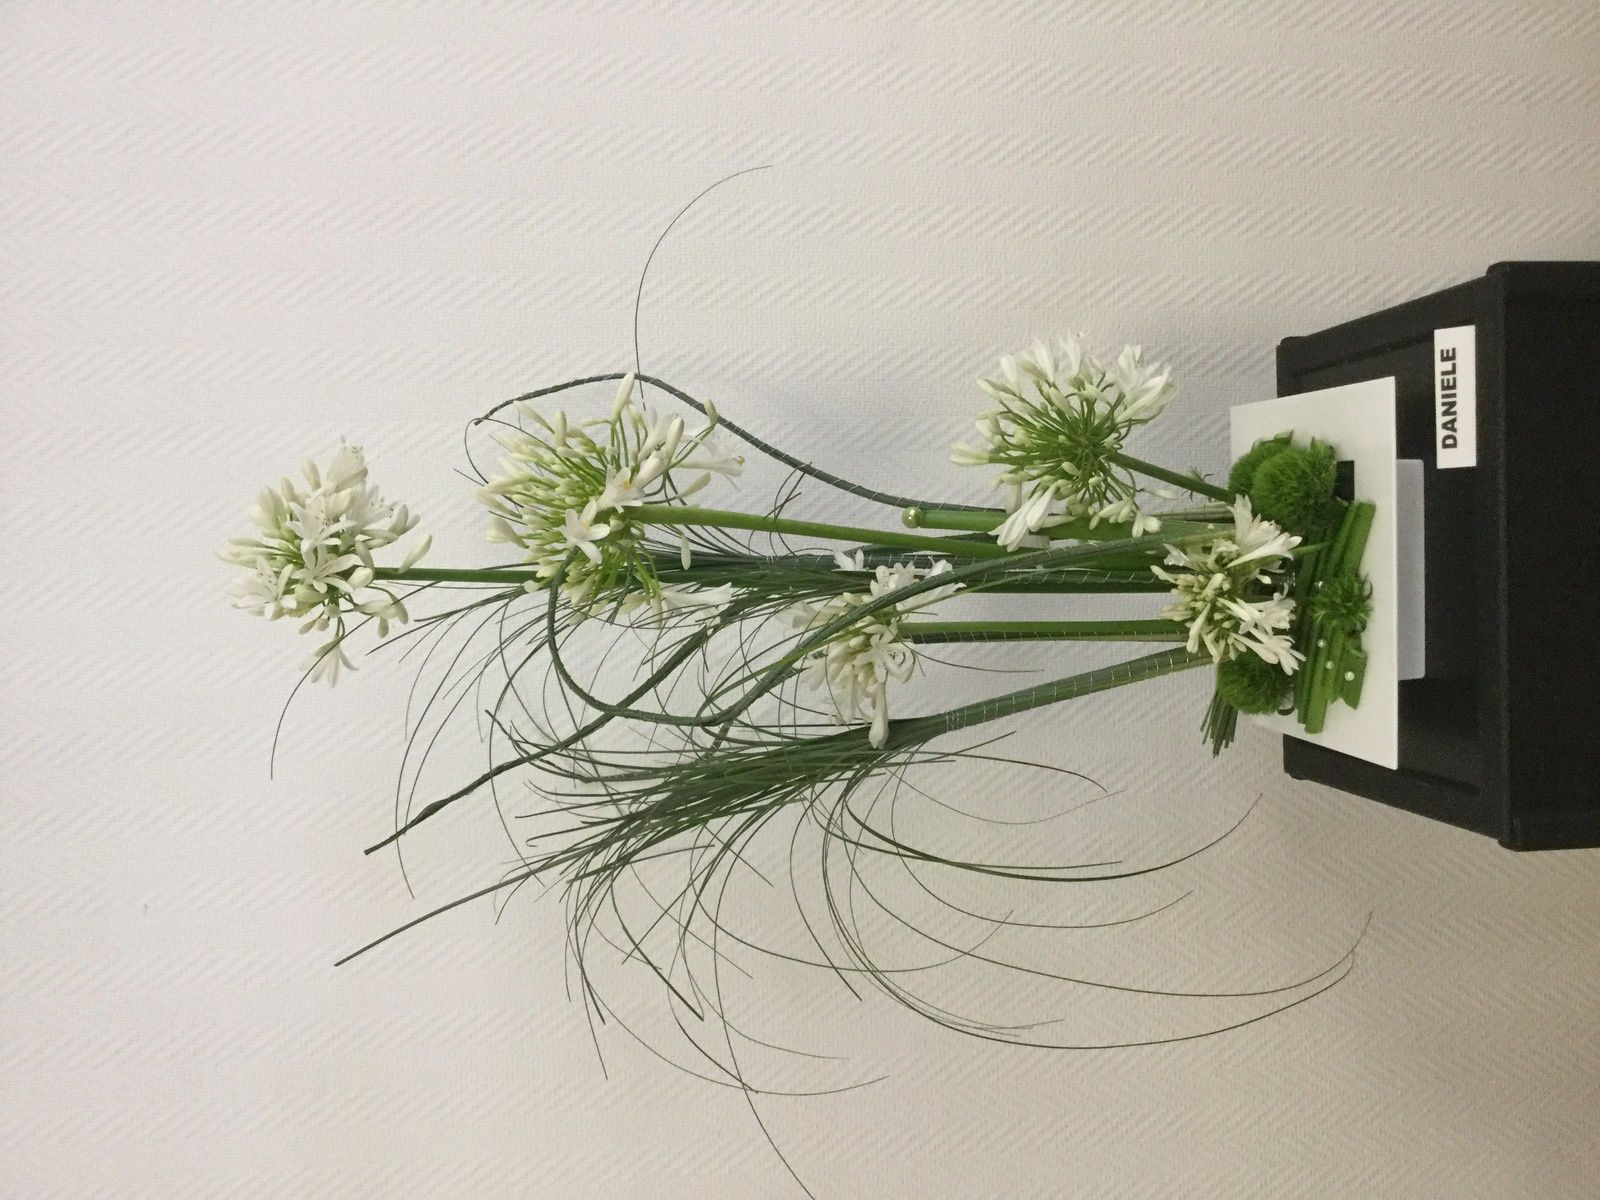 Agapantes, Bear-Grass, Oeillets Green Trick,